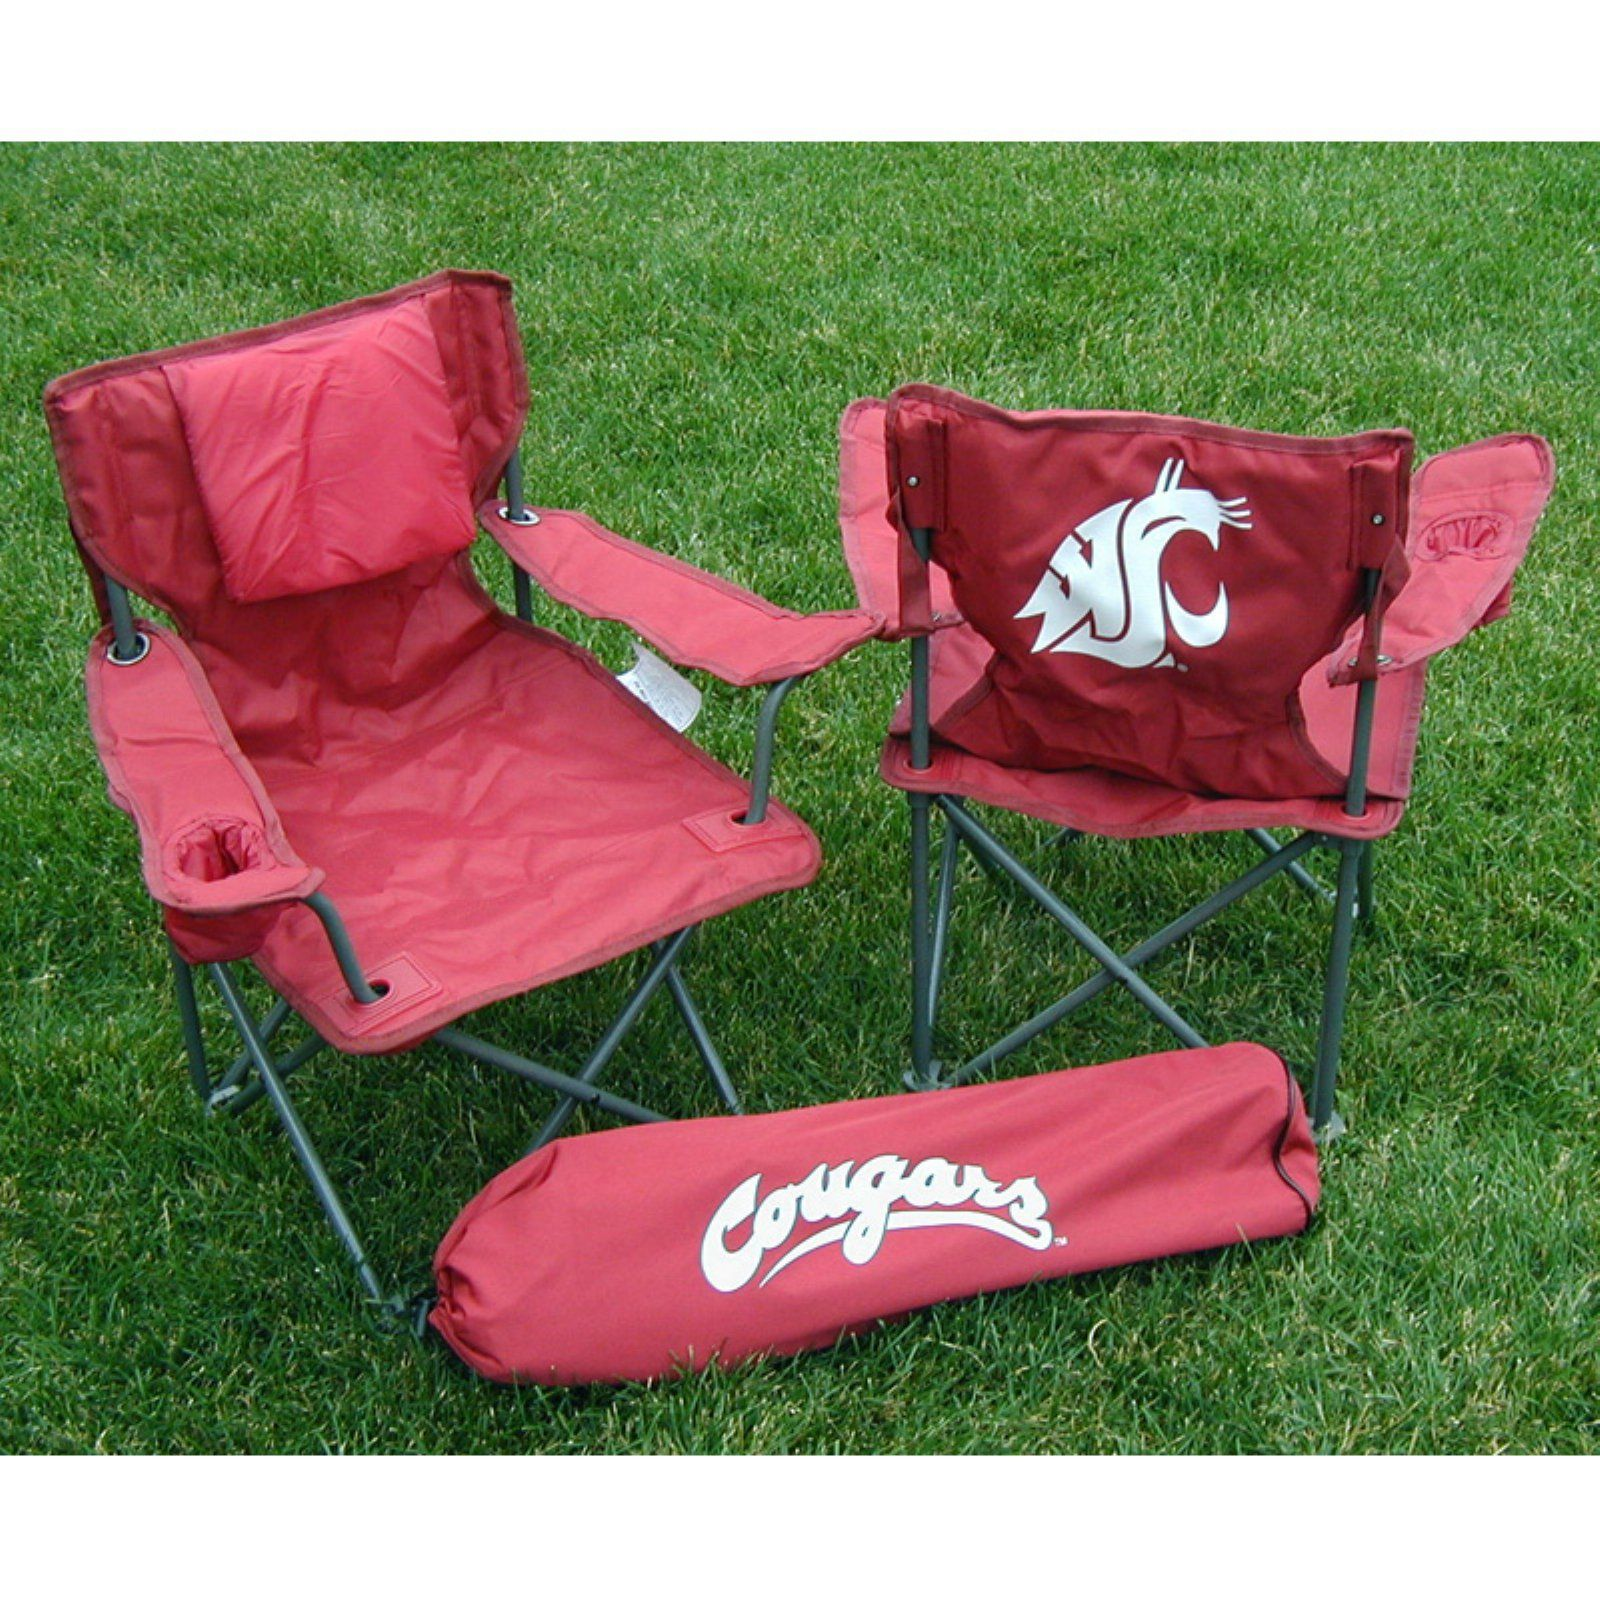 Surprising Outdoor Rivalry Ncaa Collegiate Folding Junior Tailgate Unemploymentrelief Wooden Chair Designs For Living Room Unemploymentrelieforg